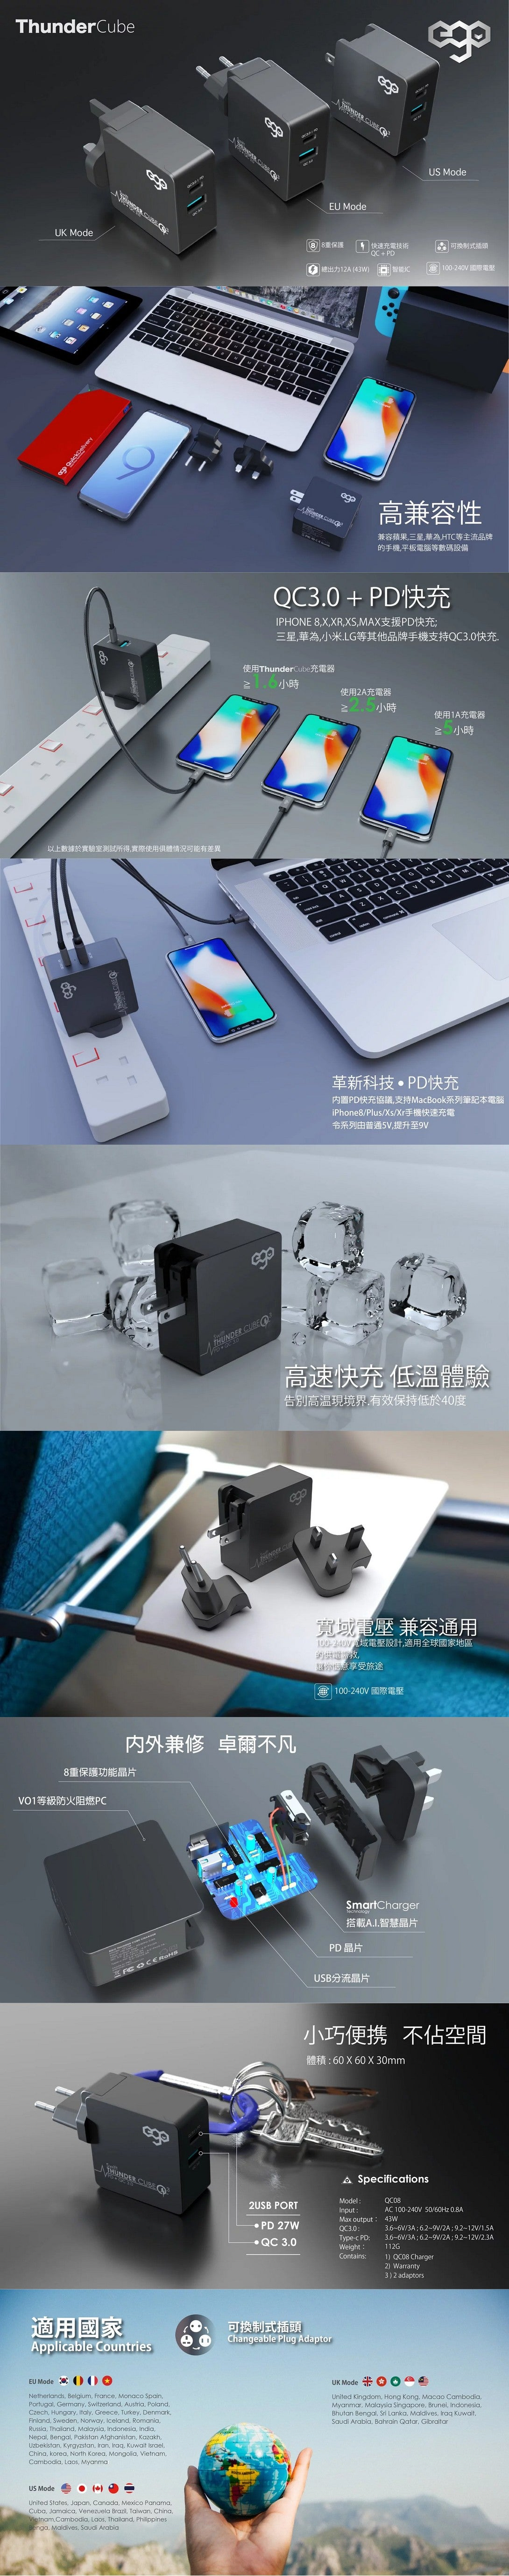 EGO Thunder Cube USB-C PD+QC 兩口旅行充電器 (43W)